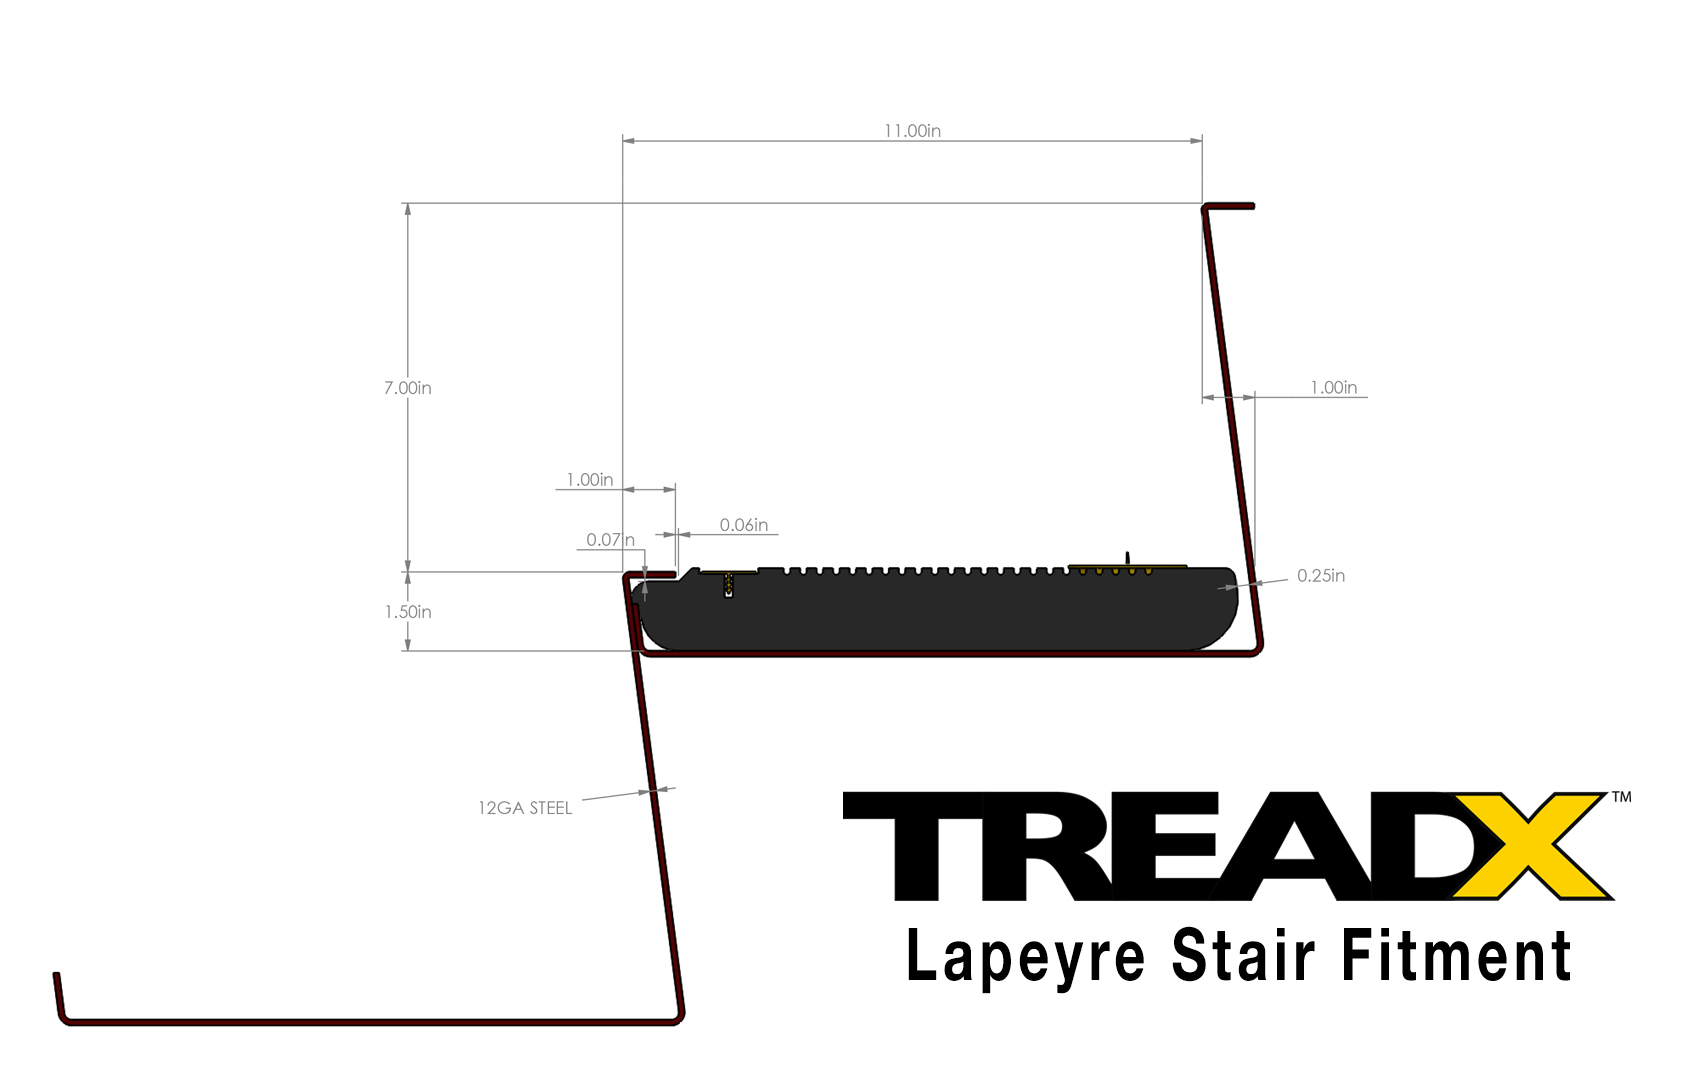 Lapeyre Stair - 1.5 Fitment Image.jpg